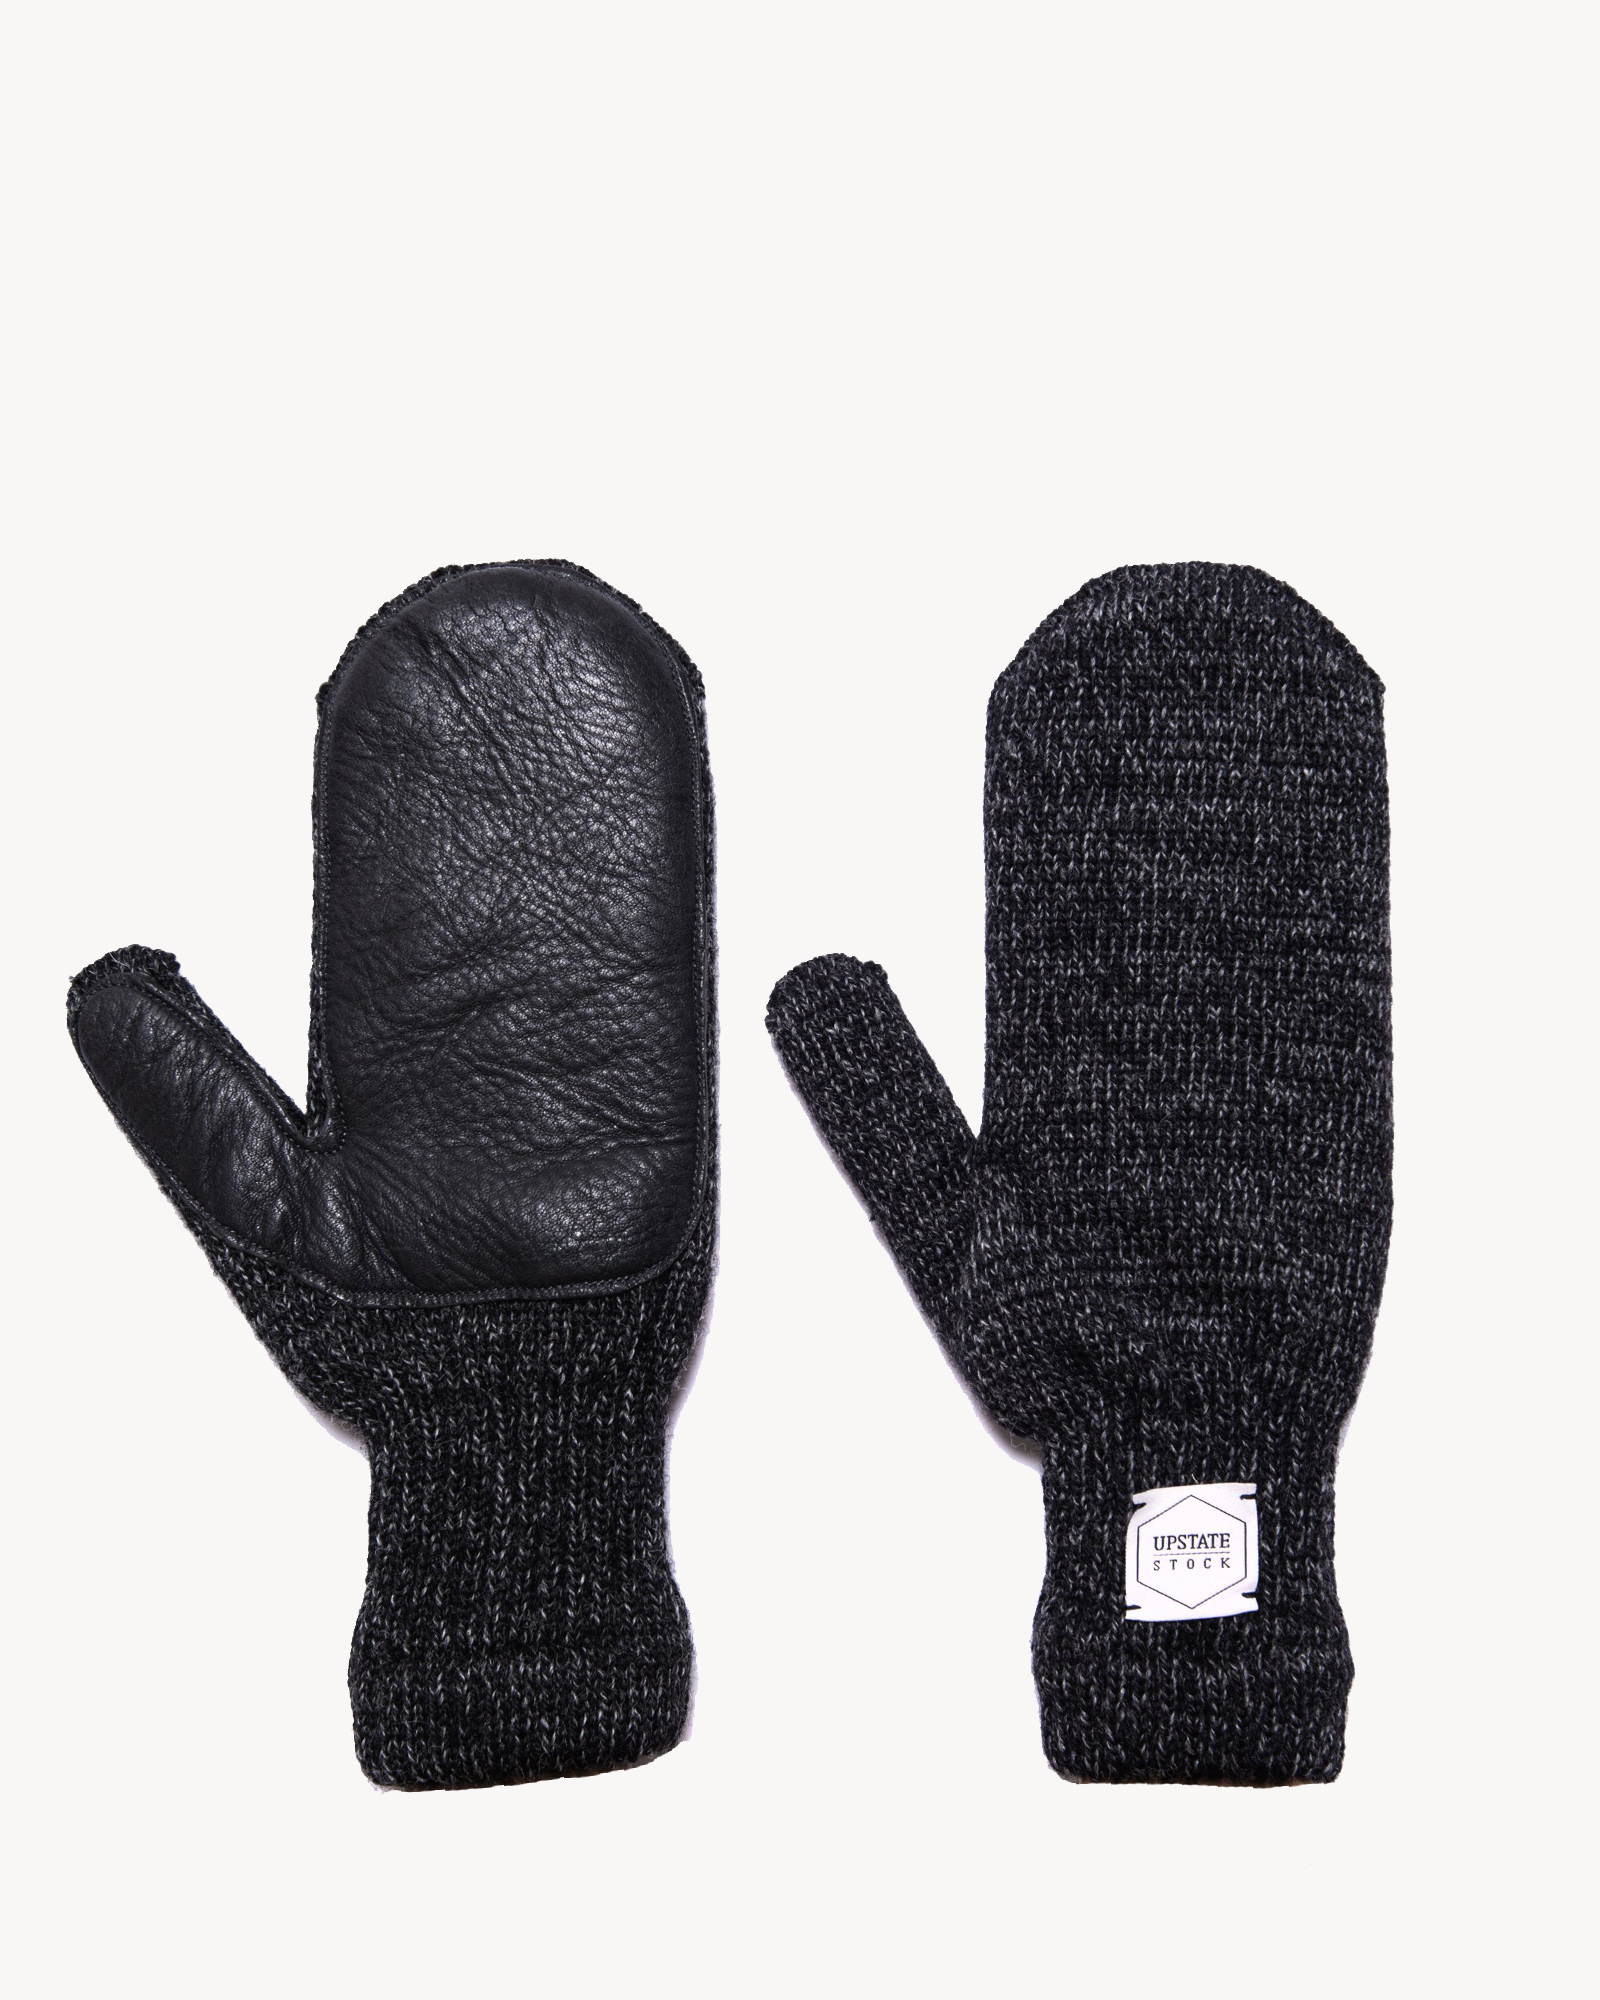 Upstate Stock - Black Melange Ragg Wool Mitten with Black Deer Skin L/XL